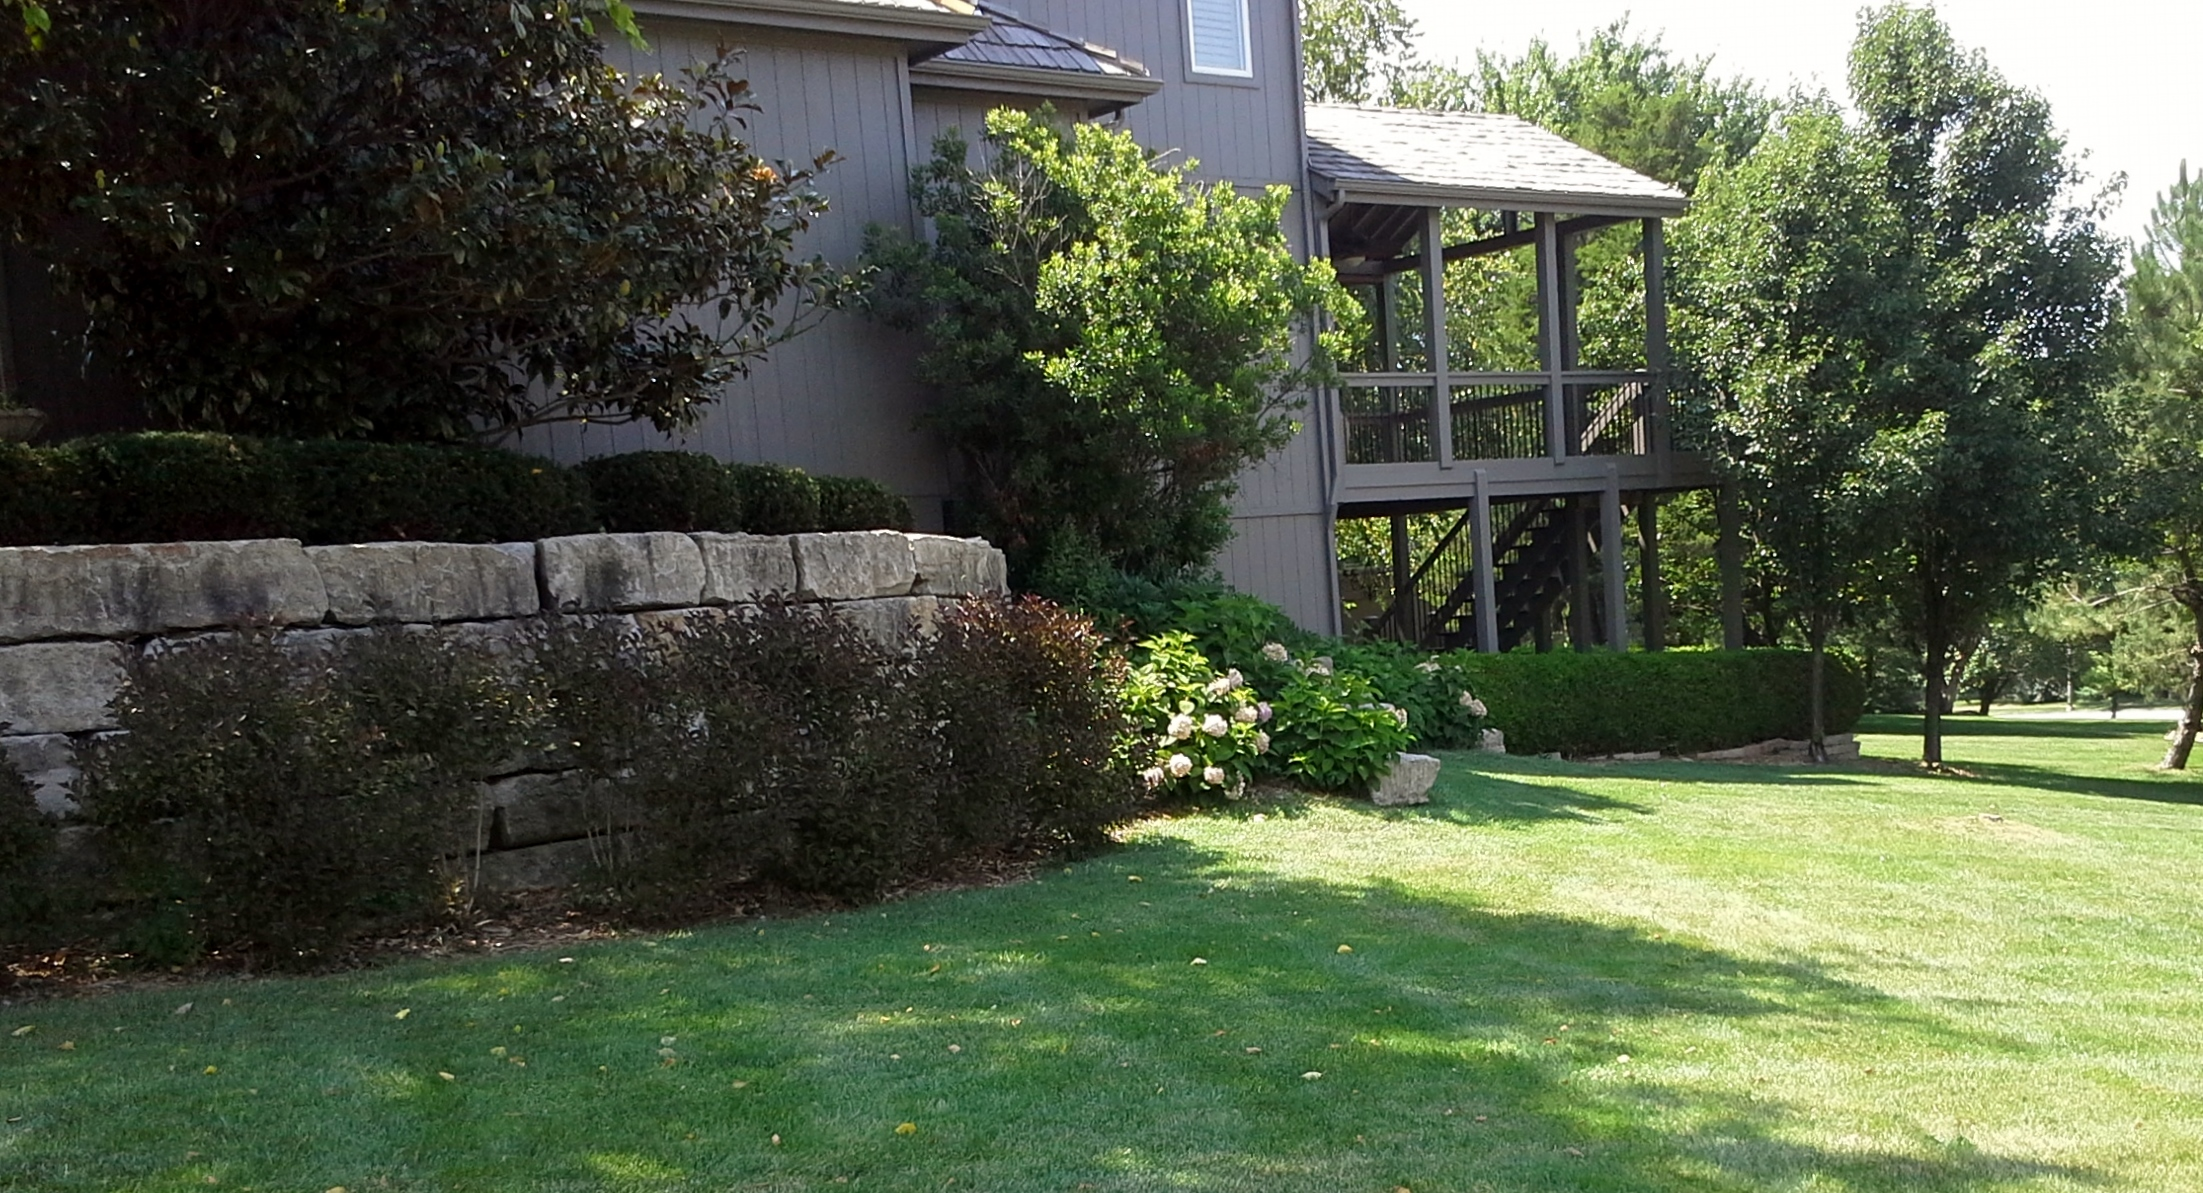 The best lawn and landscaping in kc sk lawn and landscape for The garden design sk